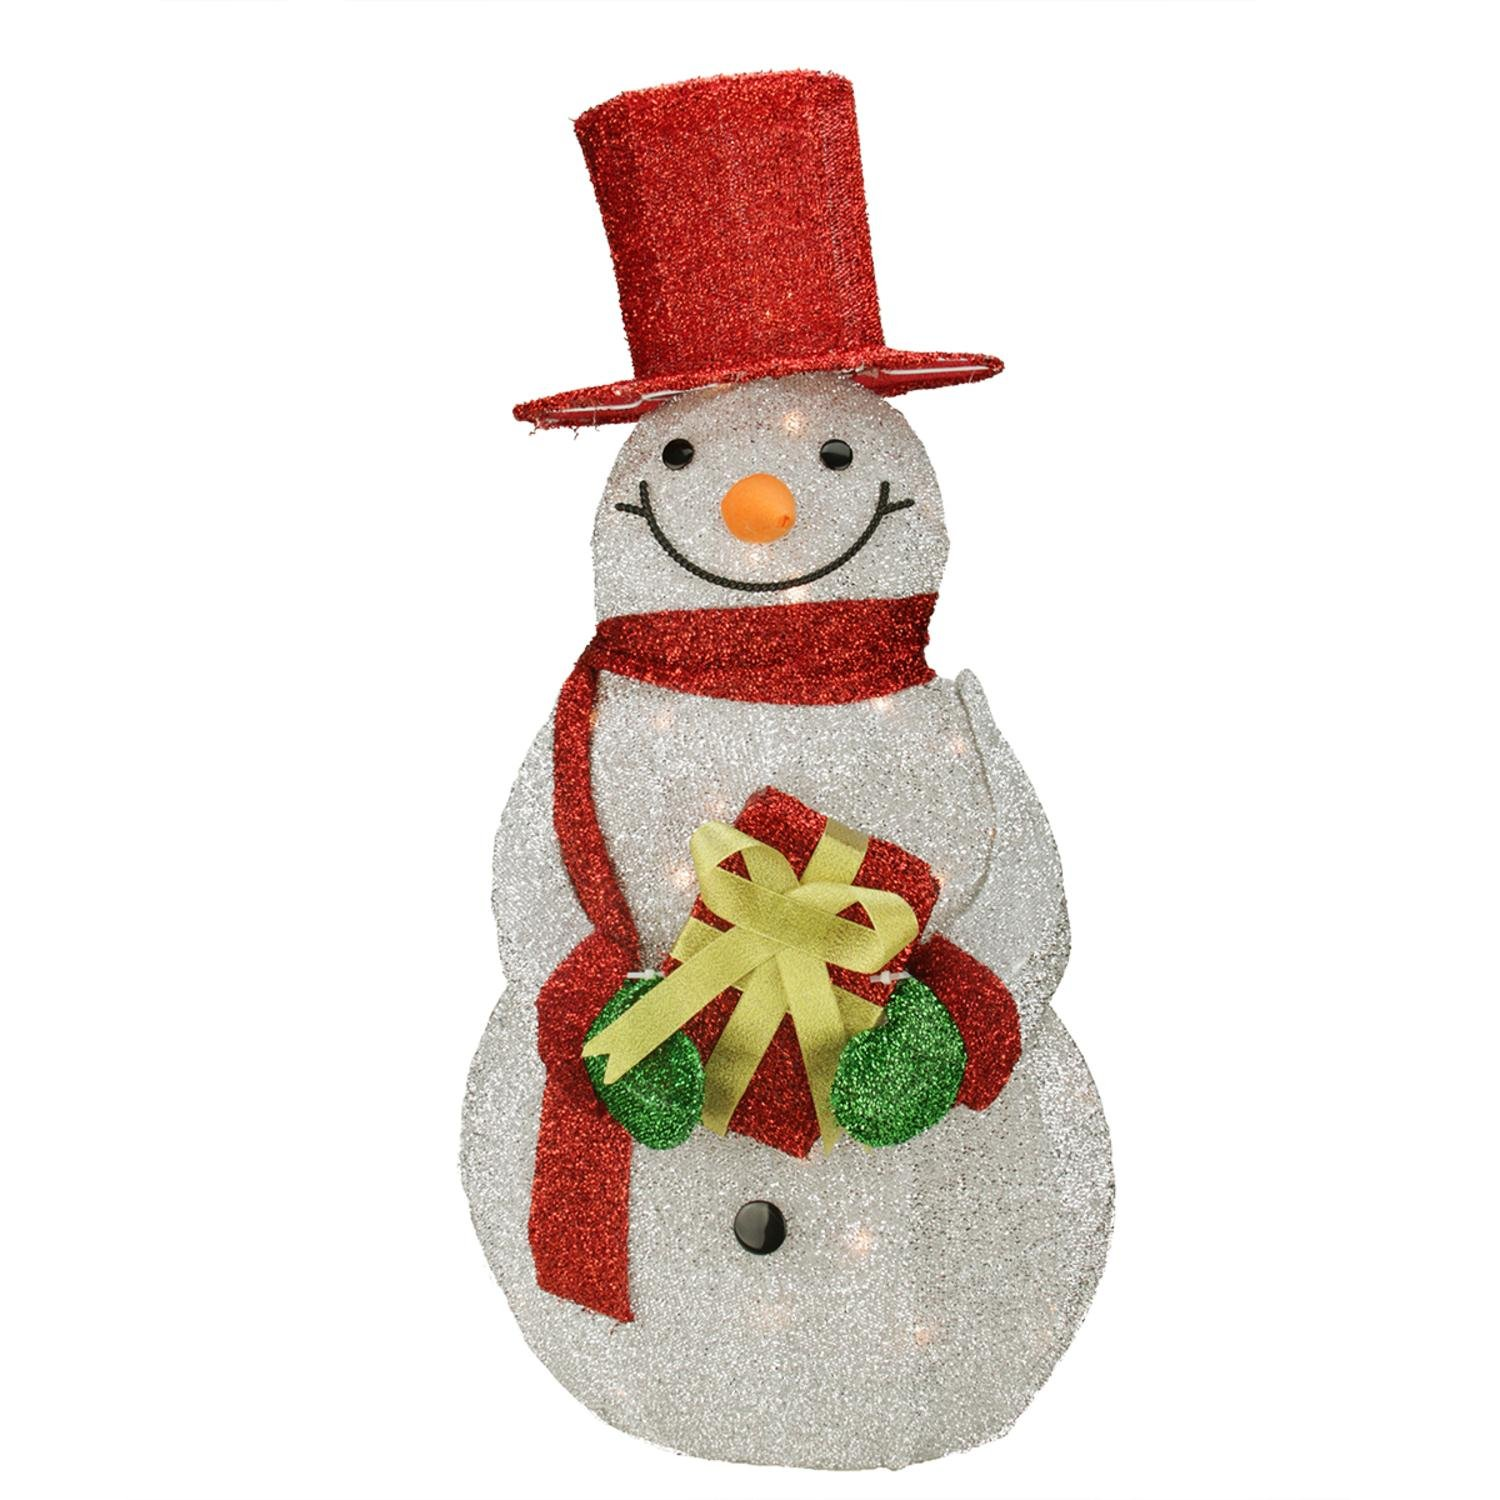 Northlight Lighted Silver Tinsel Snowman with Gift Christmas Yard Art Decoration, 32'', Red